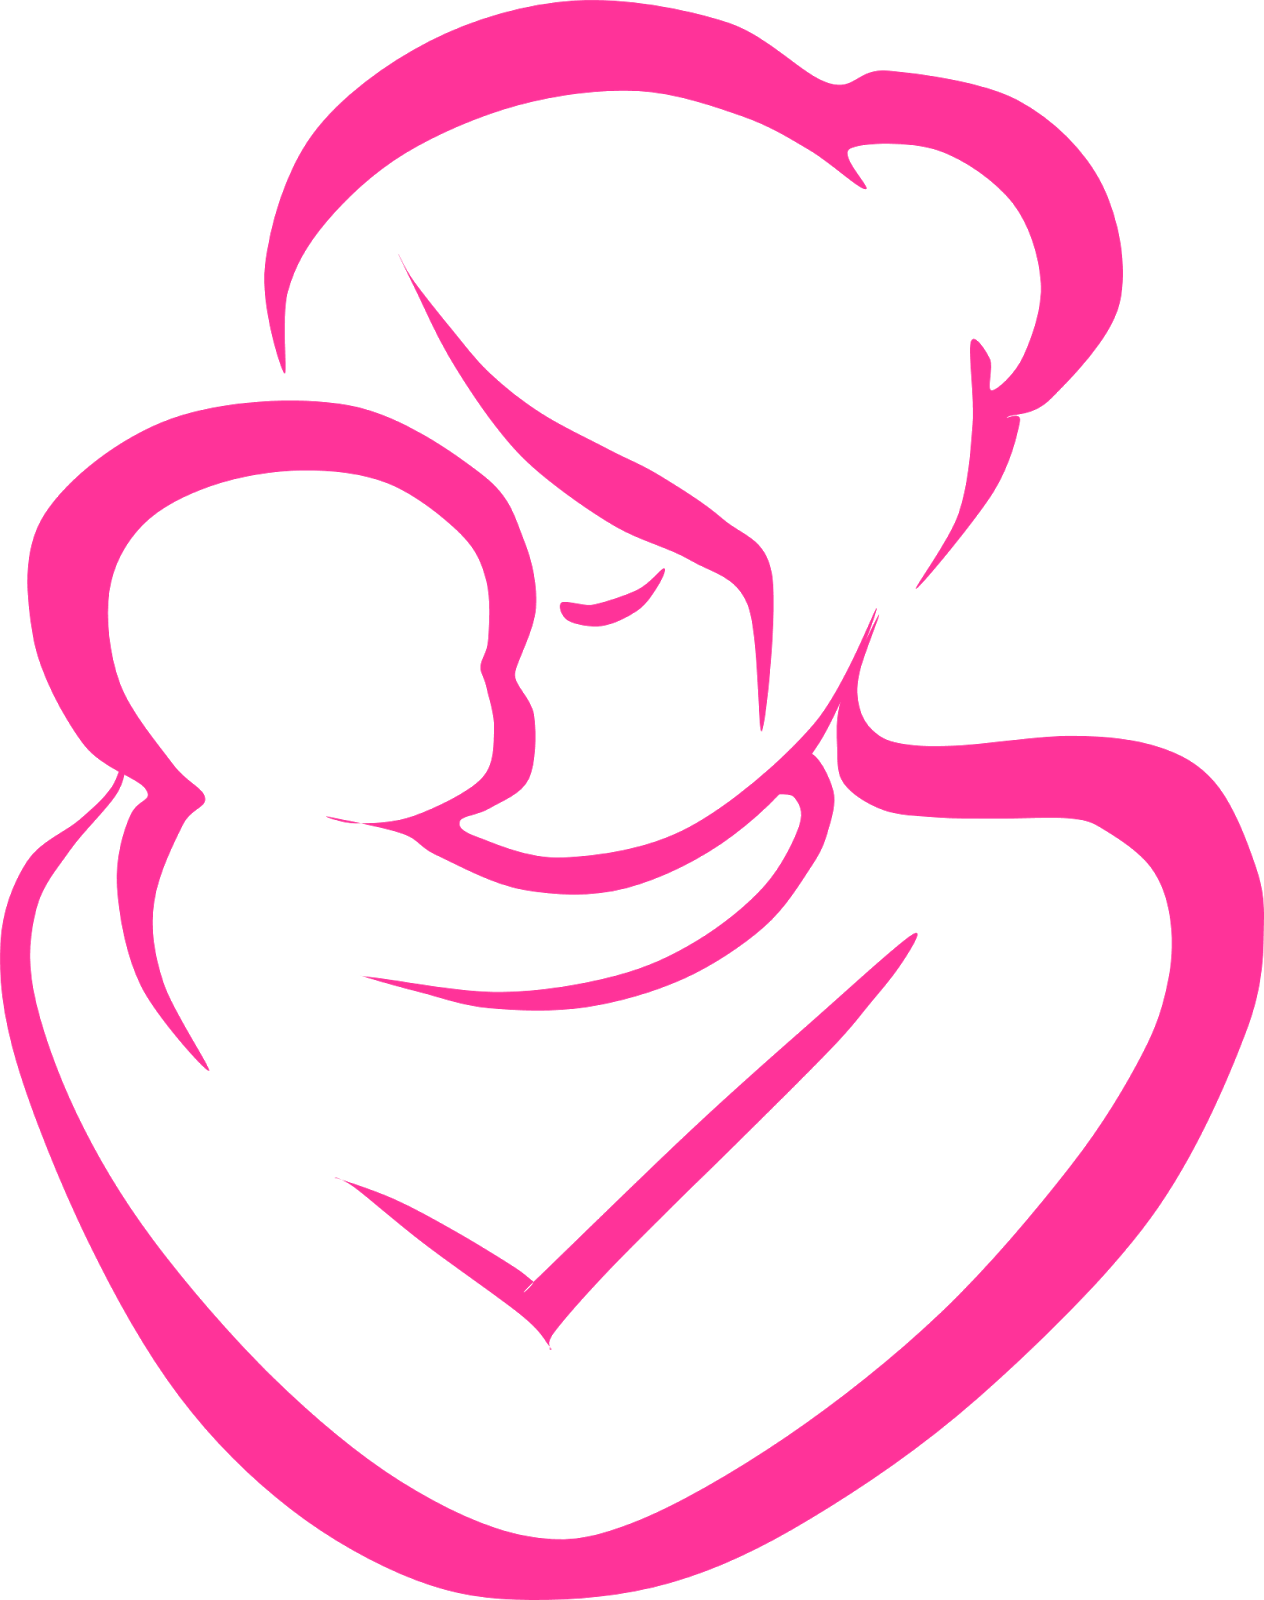 Mom And Baby Clipart | Free download best Mom And Baby ...